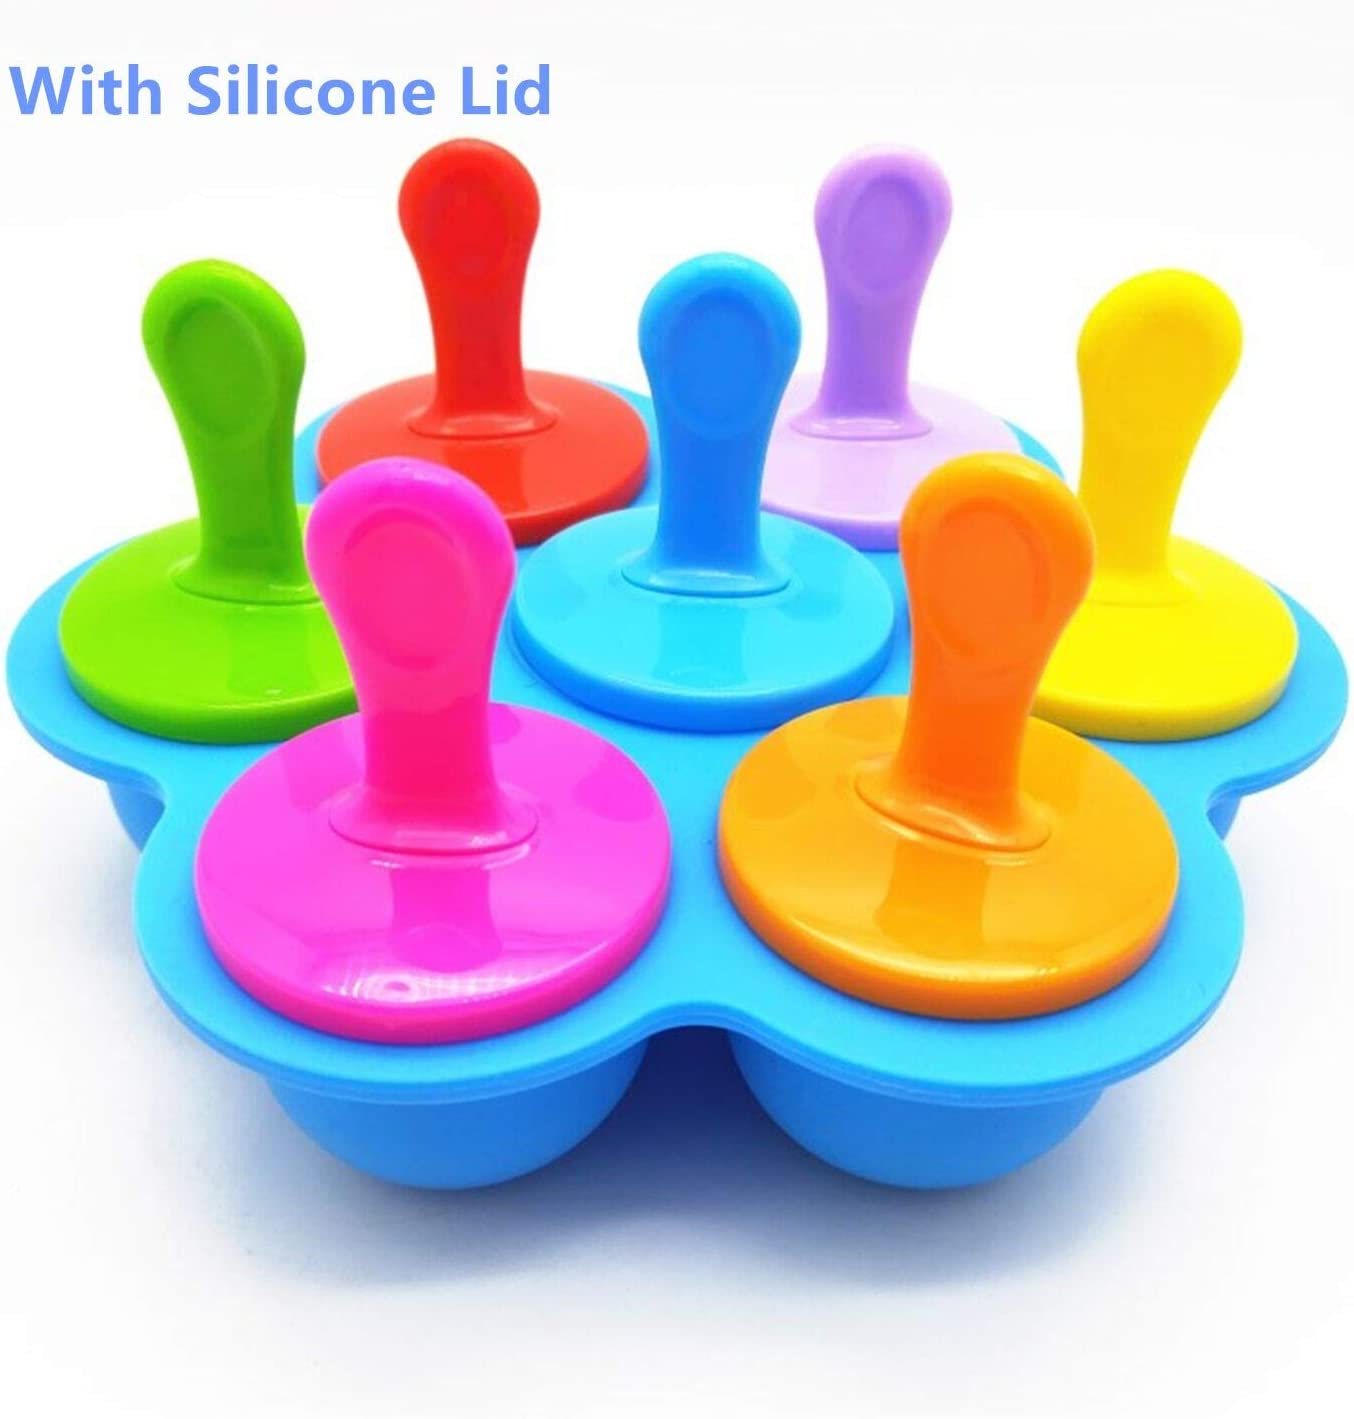 Popsicle Molds Silicone Ice Pop Molds Maker with Lids Sticks and Drip Catcher Frozen DIY Popsicle Trays Reusable Easy Release Ice Pop Maker No Drip Food Storage Container